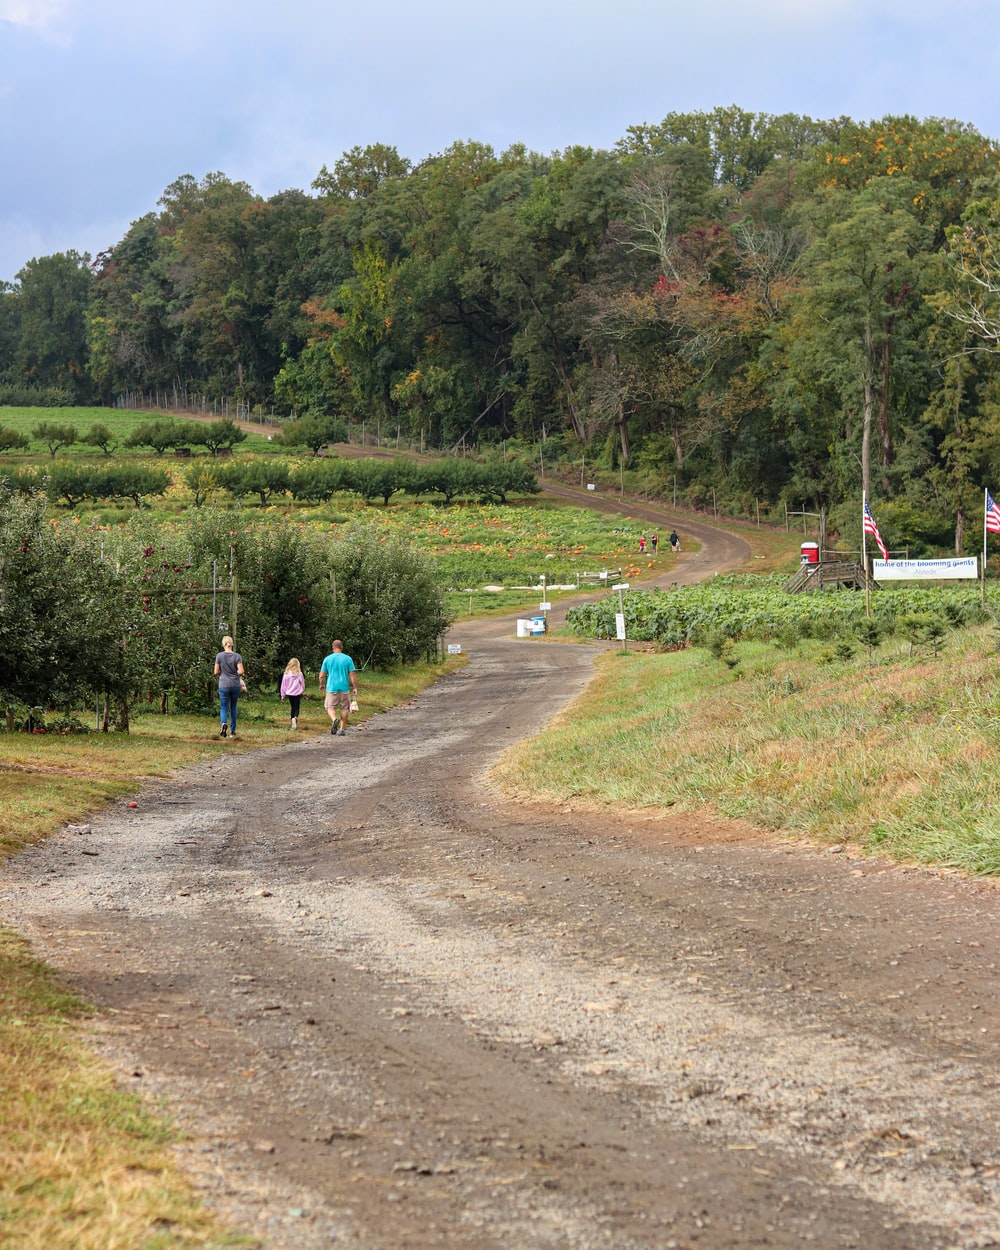 people walking on dirt road near green grass field during daytime